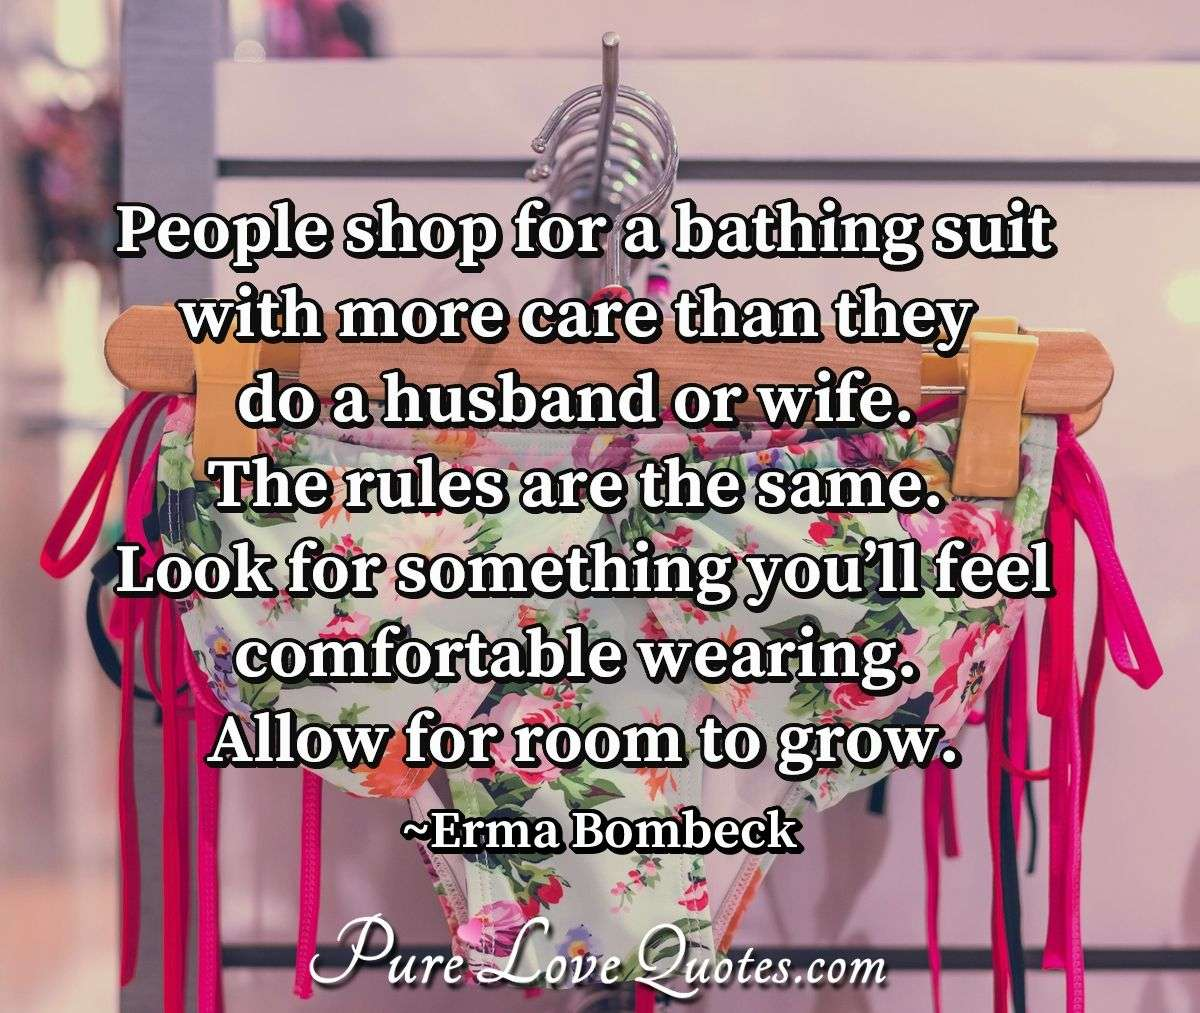 People shop for a bathing suit with more care than they do a husband or wife. The rules are the same. Look for something you'll feel comfortable wearing. Allow for room to grow. - Erma Bombeck